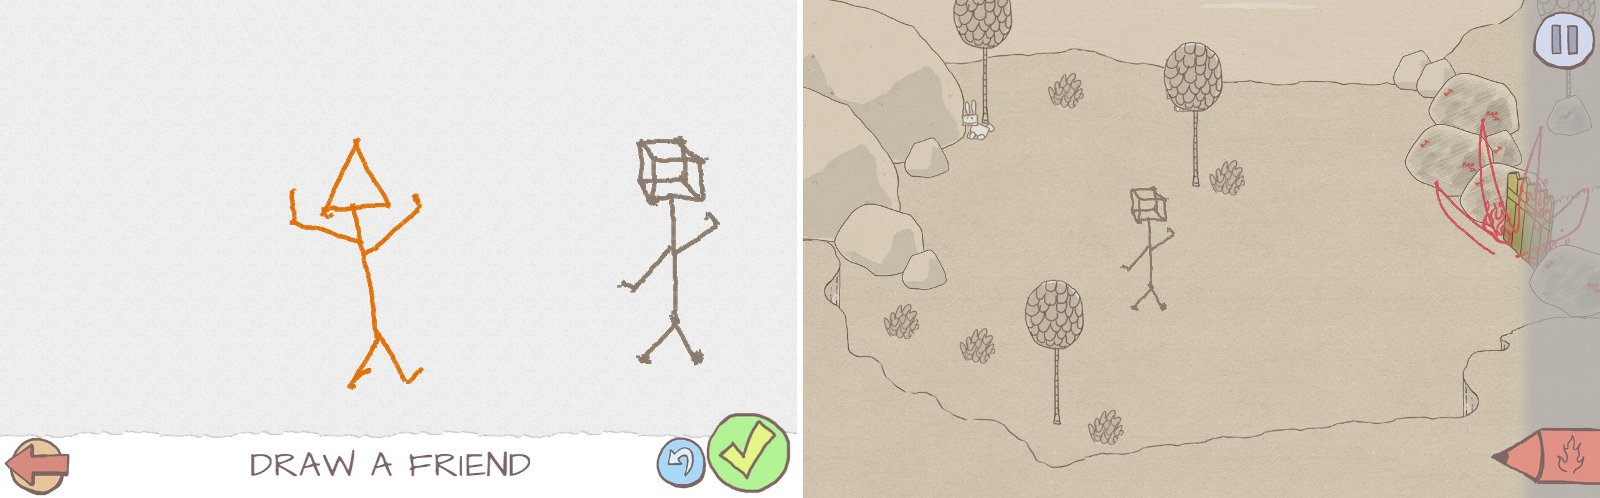 1600x498 Draw a Stickman Adventure, RPG, and puzzle game in one